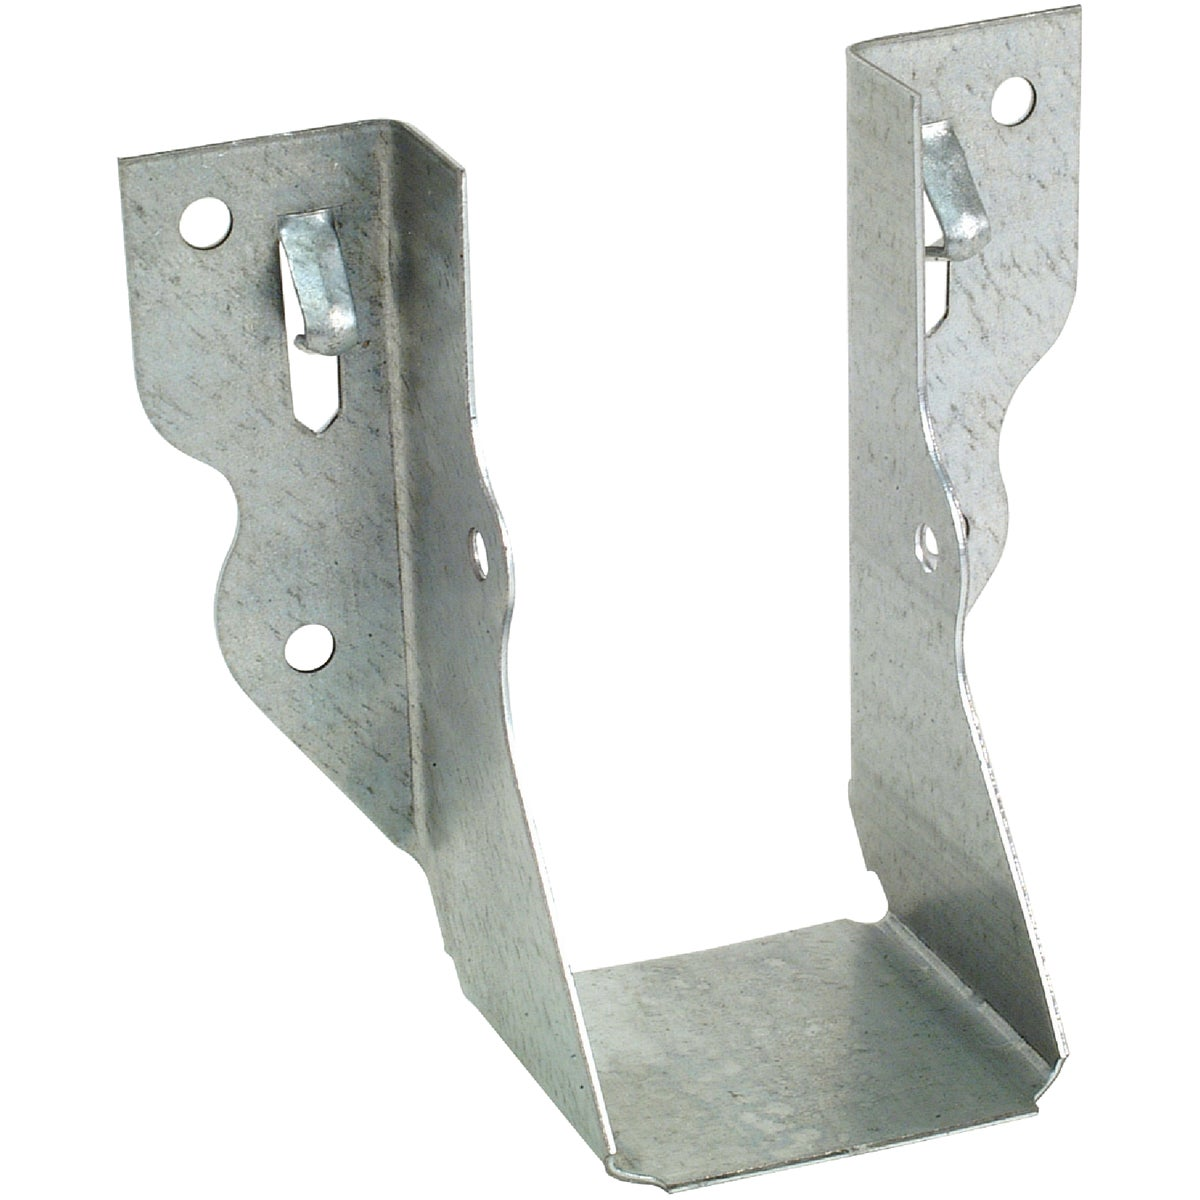 2X4 JOIST HANGER - LU24 by Simpson Strong Tie